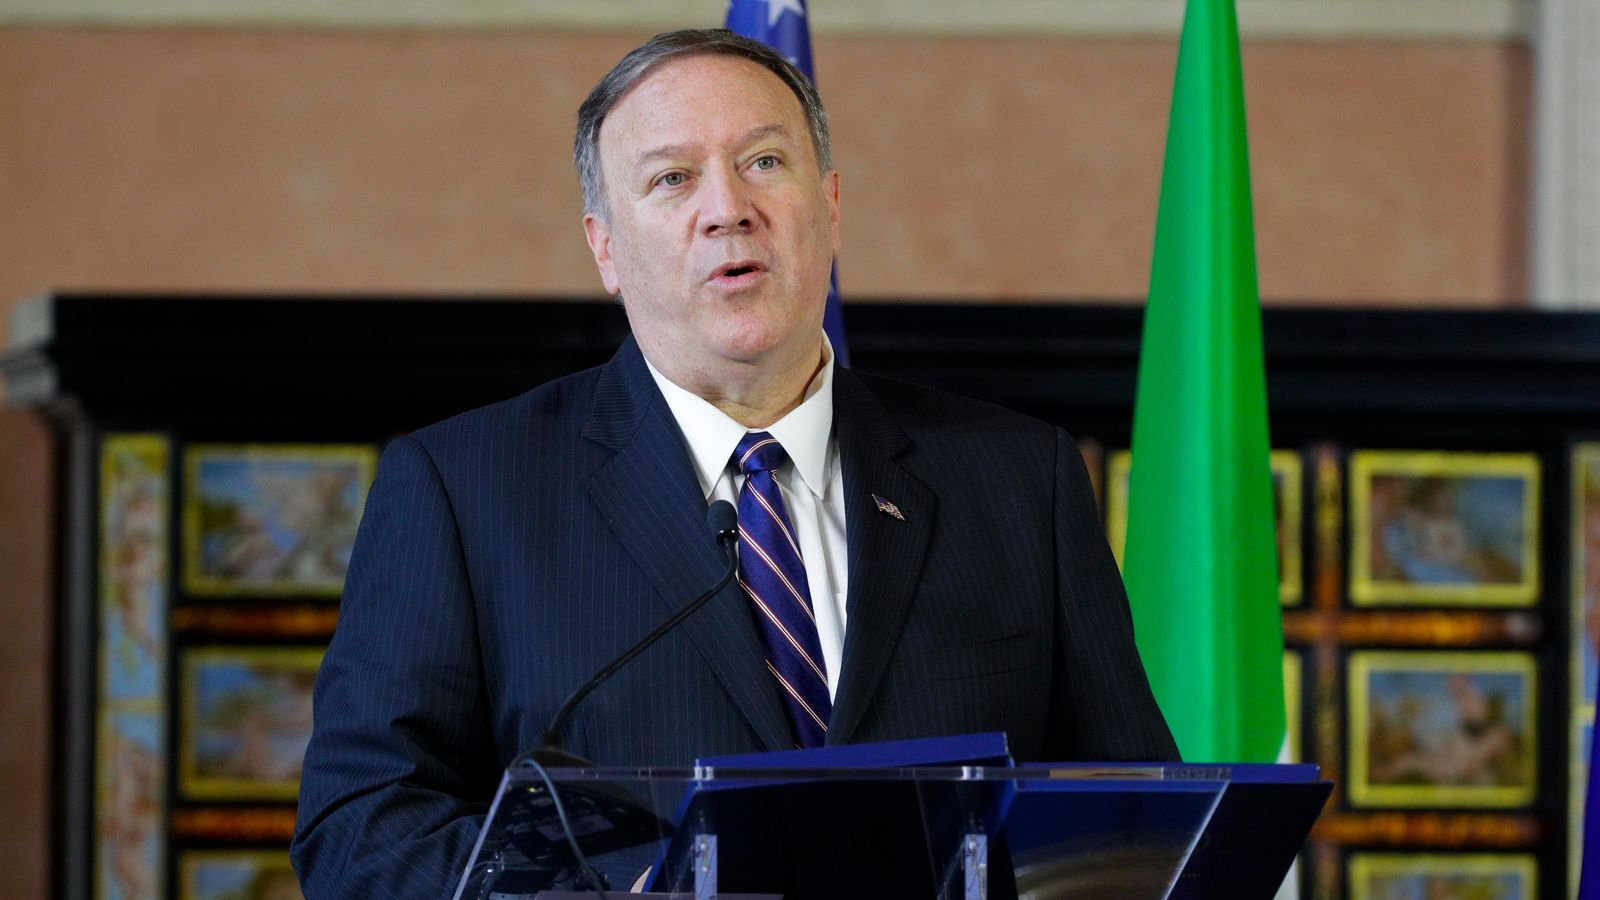 U.S. Secretary of State, Mike Pompeo speaks after meeting Italian Foreign Minister Luigi Di Maio in Rome, Wednesday, Oct. 2, 2019. (AP Photo/Andrew Medichini)